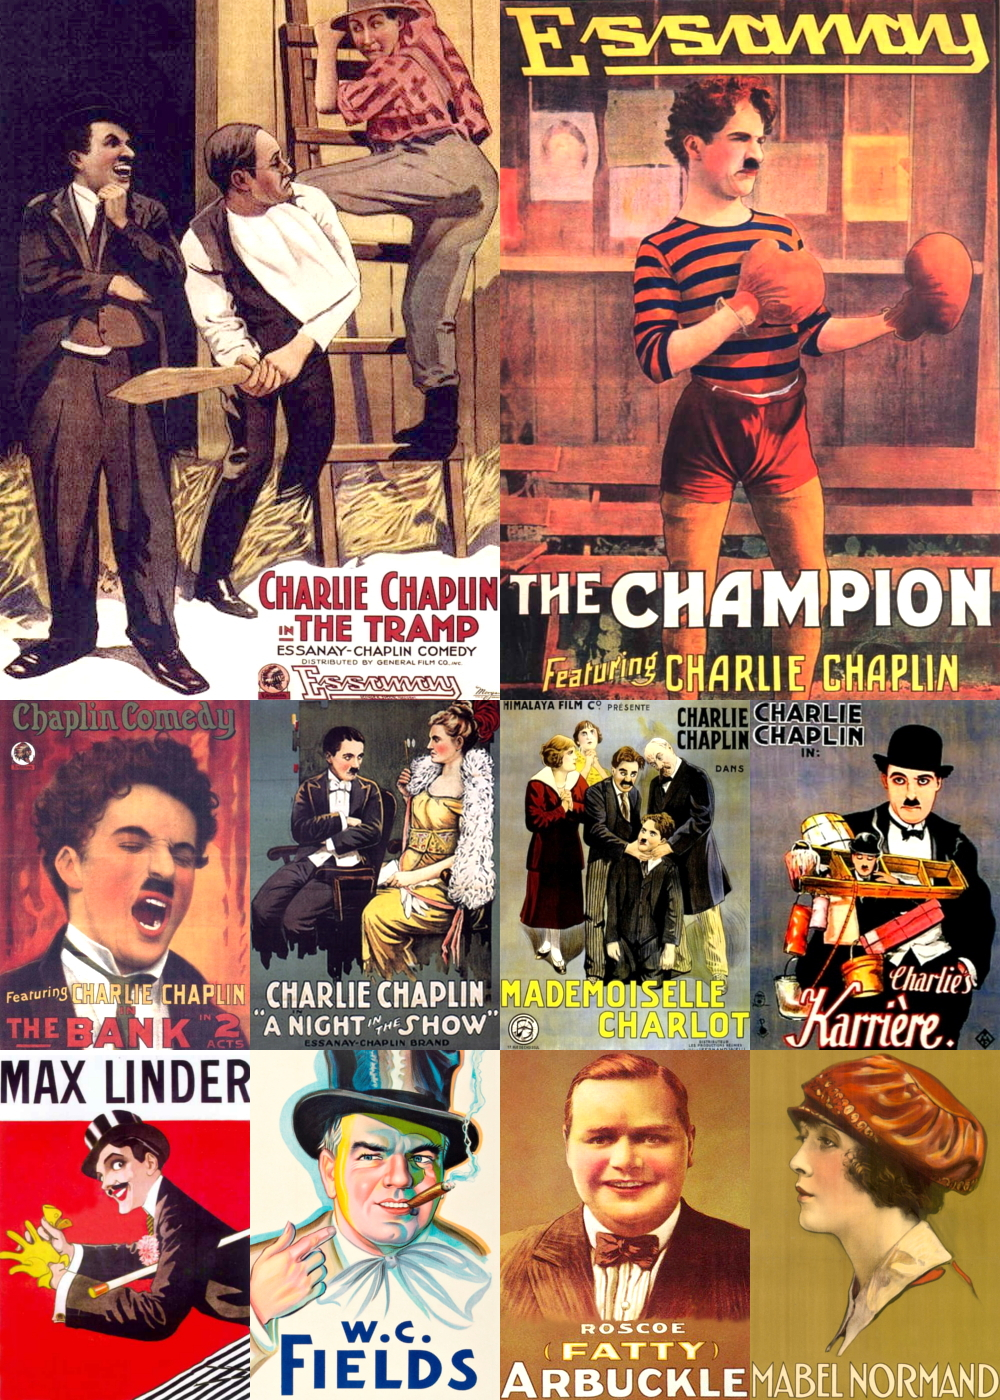 Top 10 Comedy Movies 1915